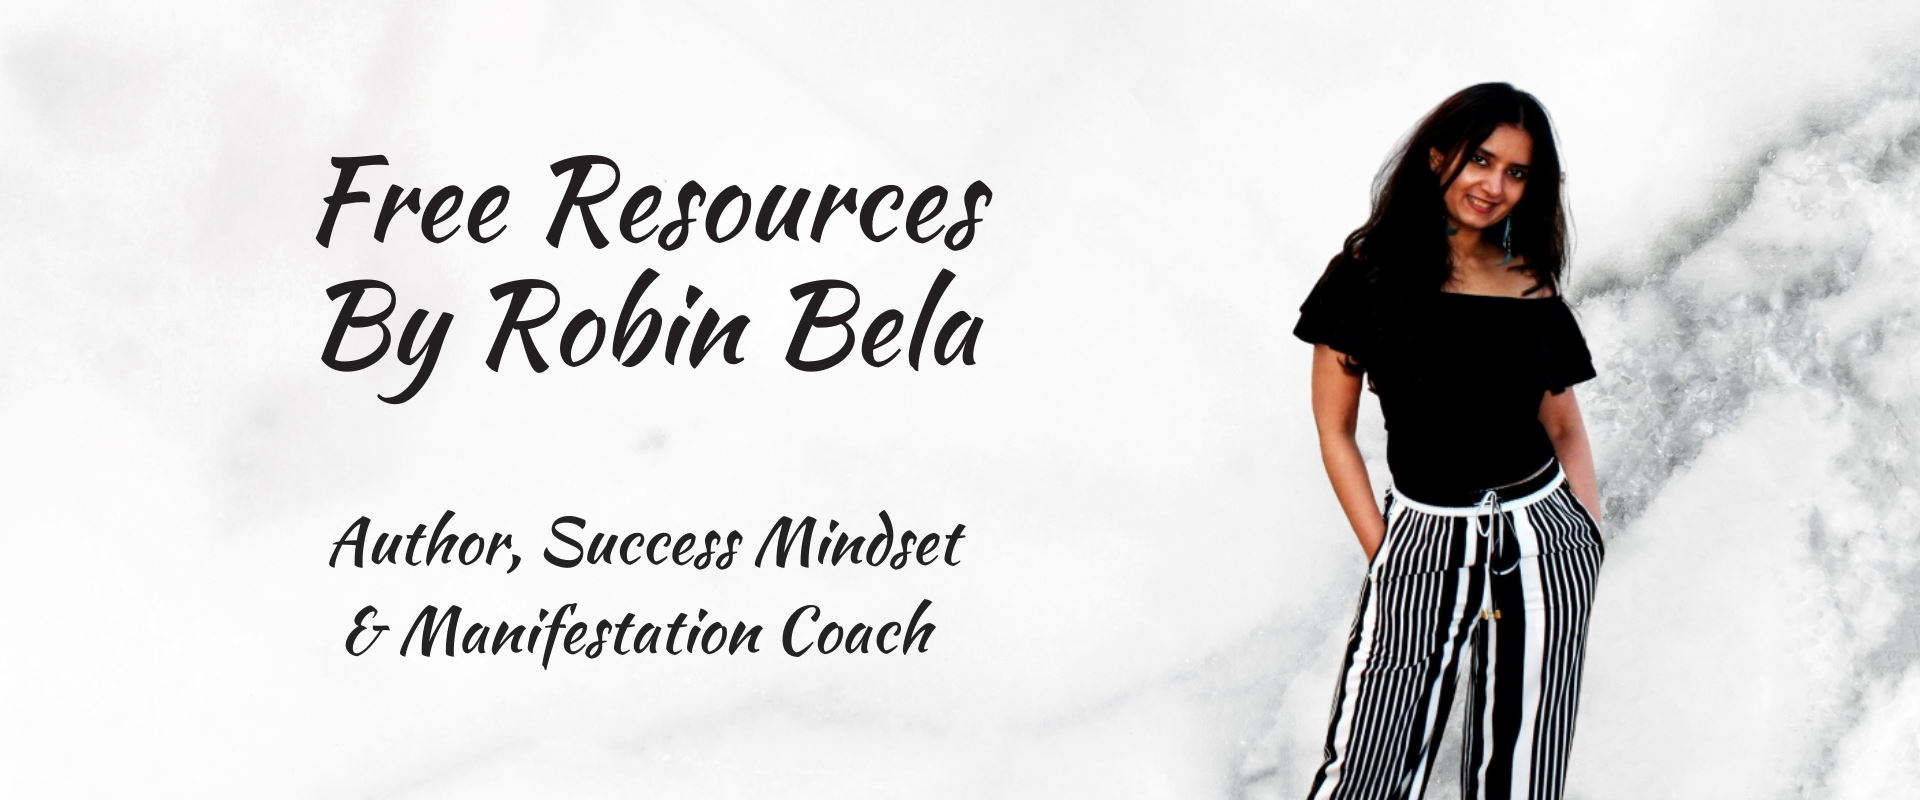 Free Resources by Robin Bela